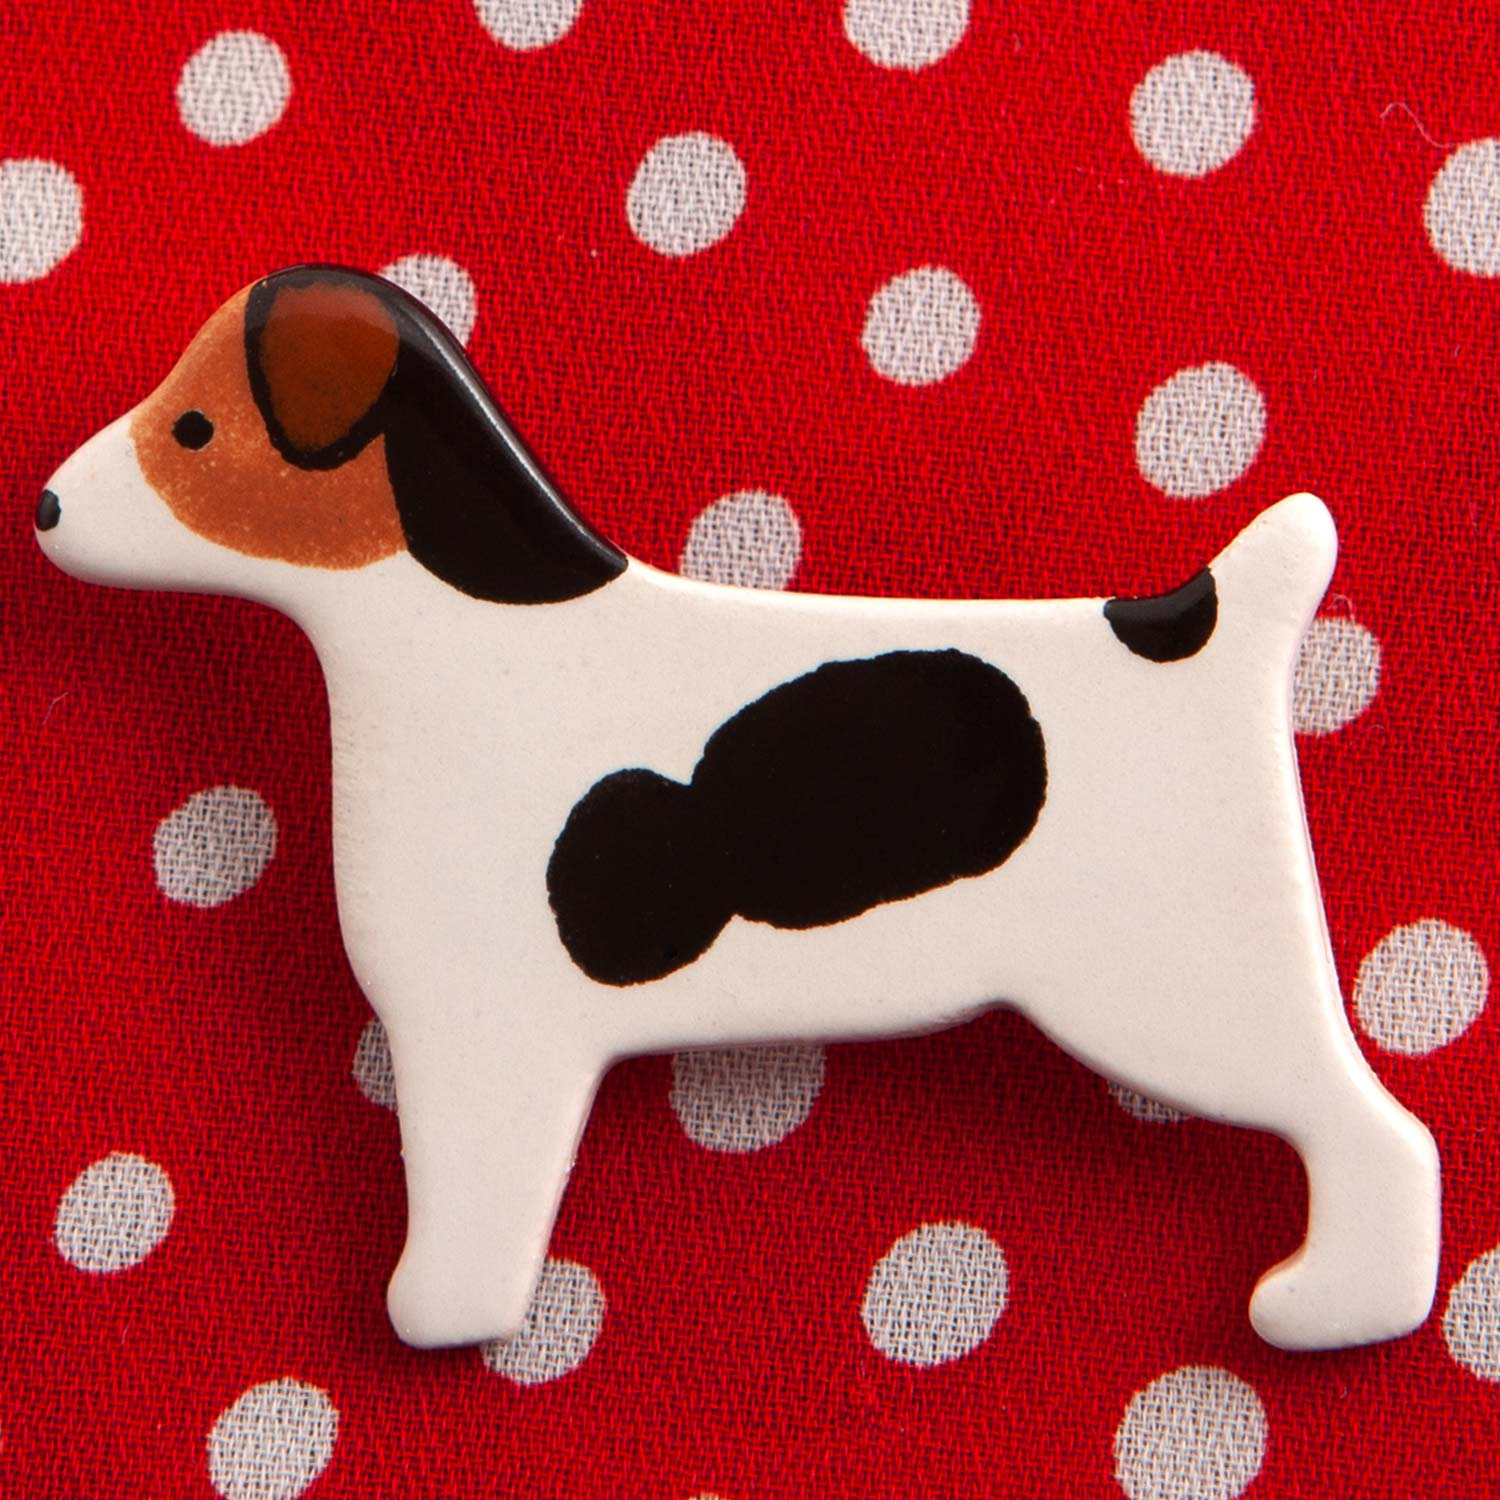 Dog Lover Gifts available at Dog Krazy Gifts – Ceramic Chocolate Labrador Brooch by Mary Goldberg of Stockwell Ceramics, Just Part Of Our Collection Of Jack Russell Themed Gifts, Available At www.dogkrazygifts.co.uk